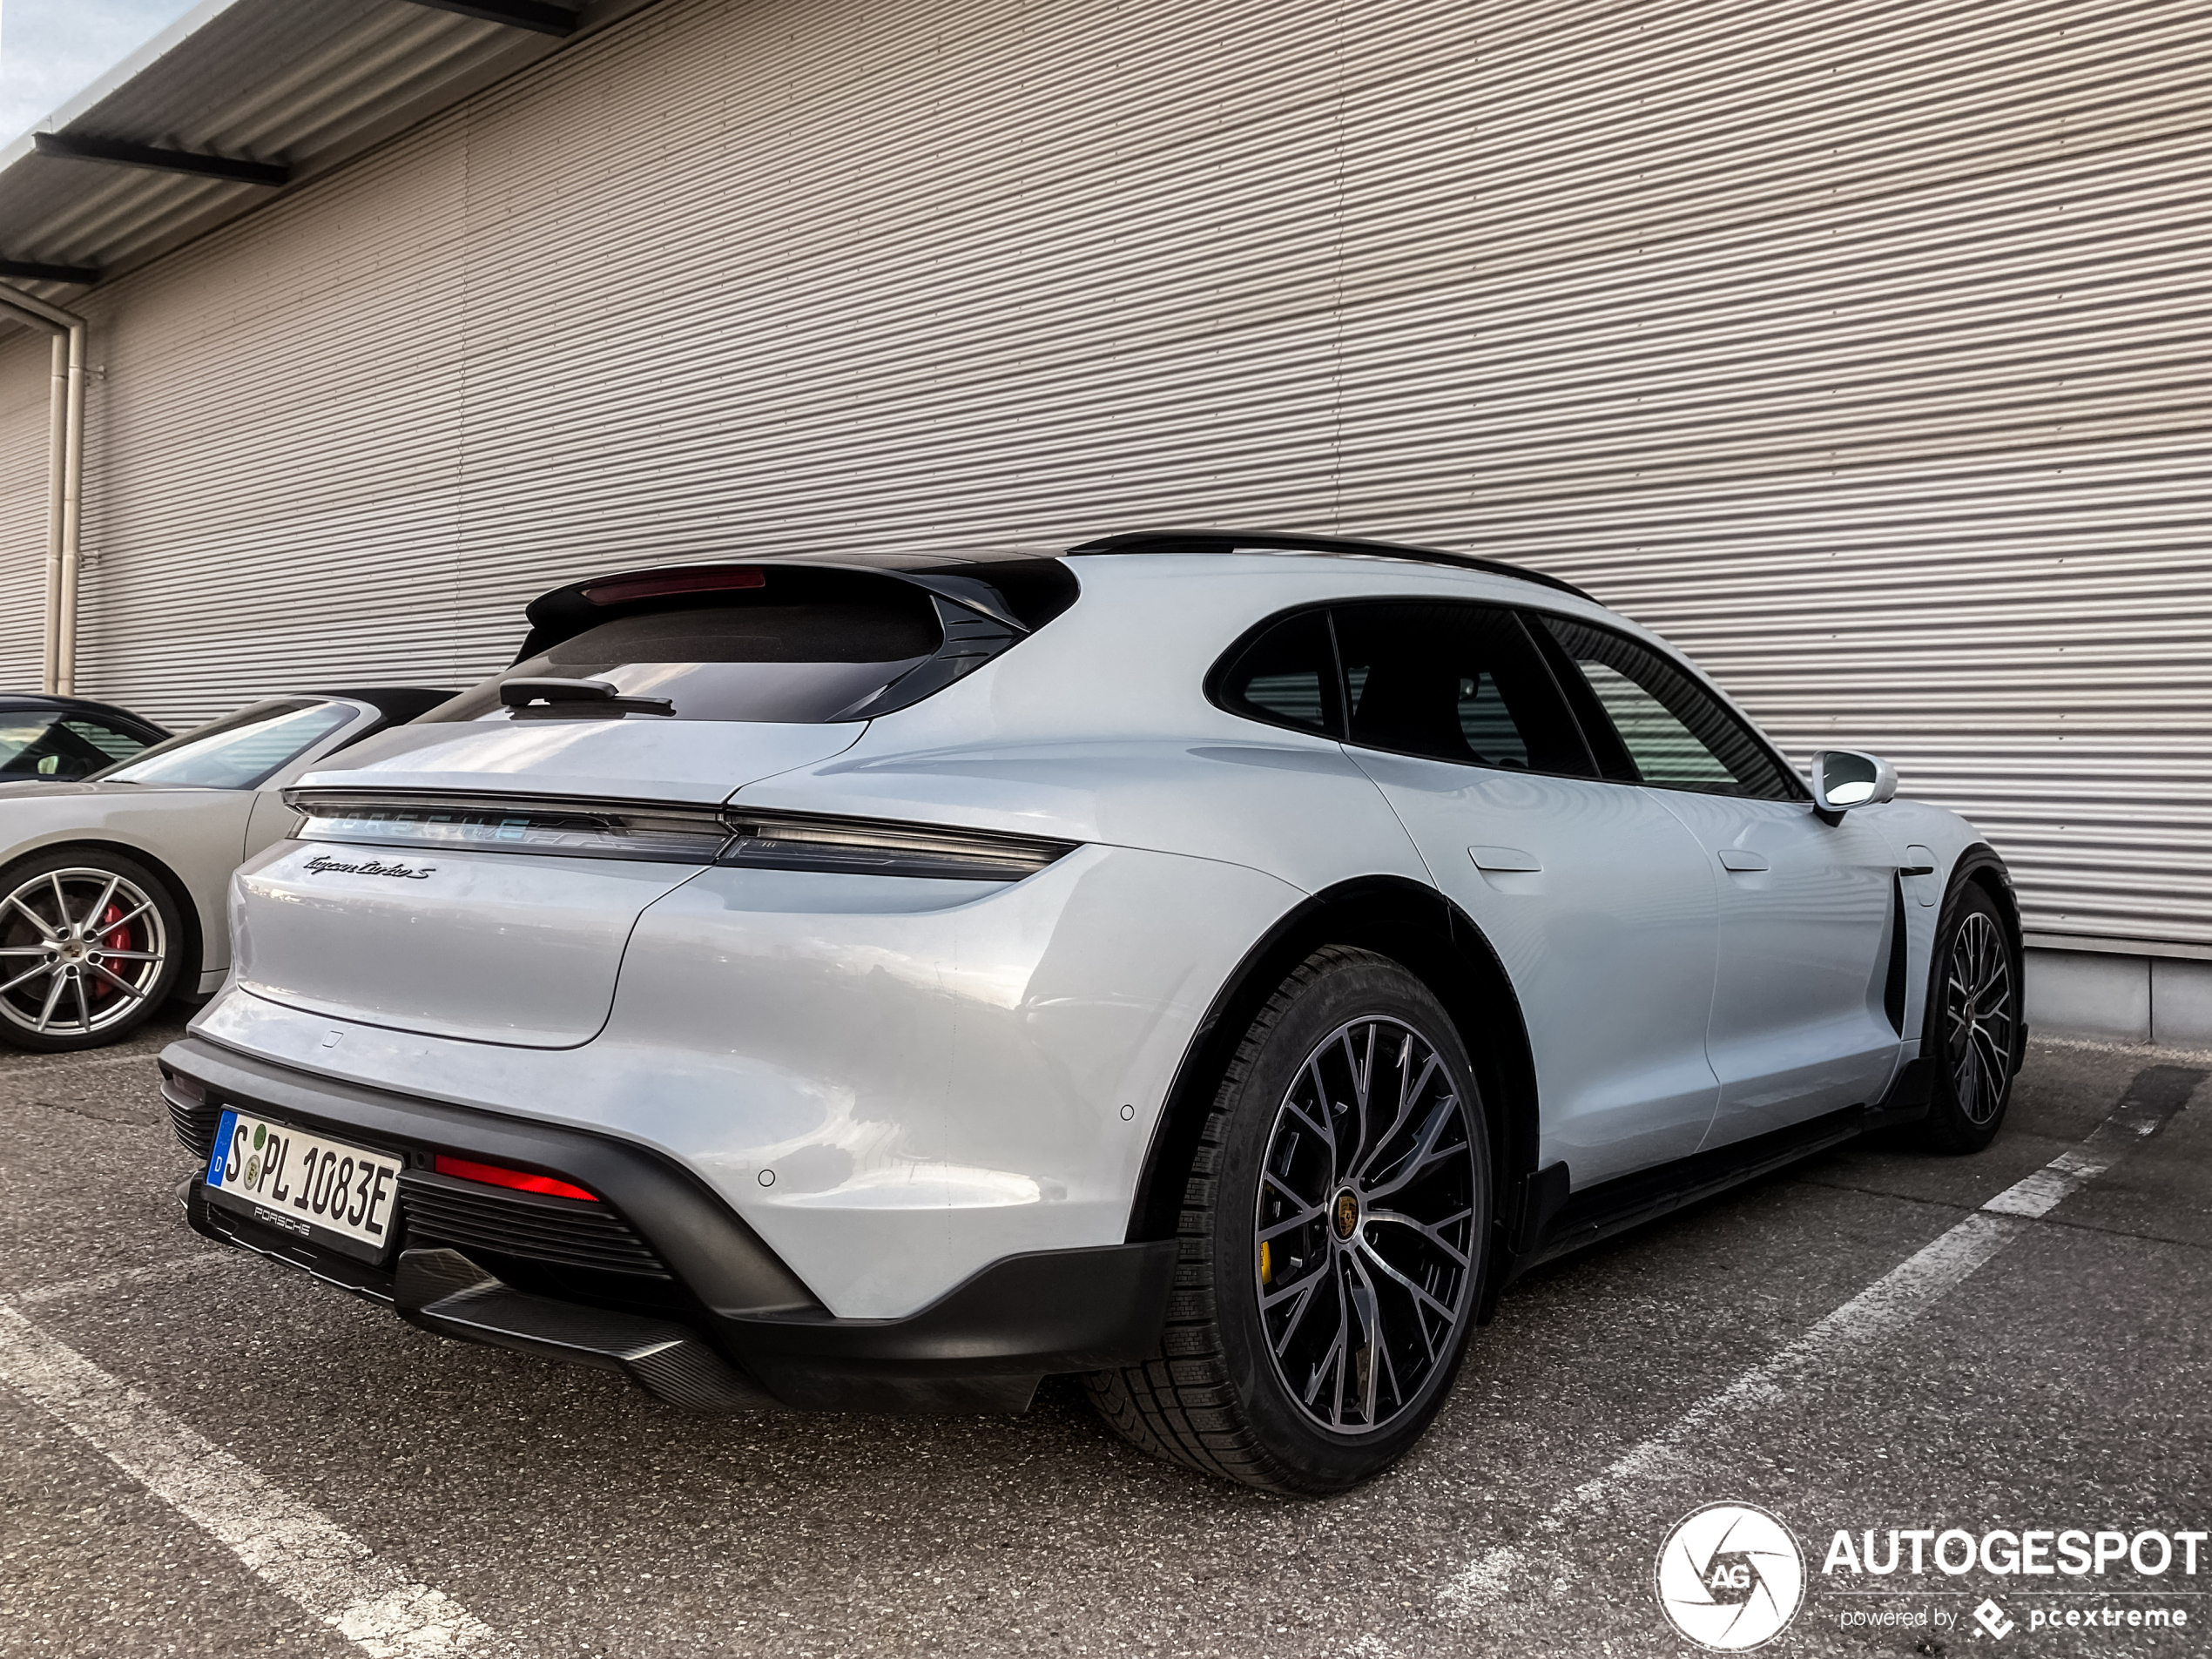 Daar is de eerste Porsche Taycan Turbo S Cross Turismo!